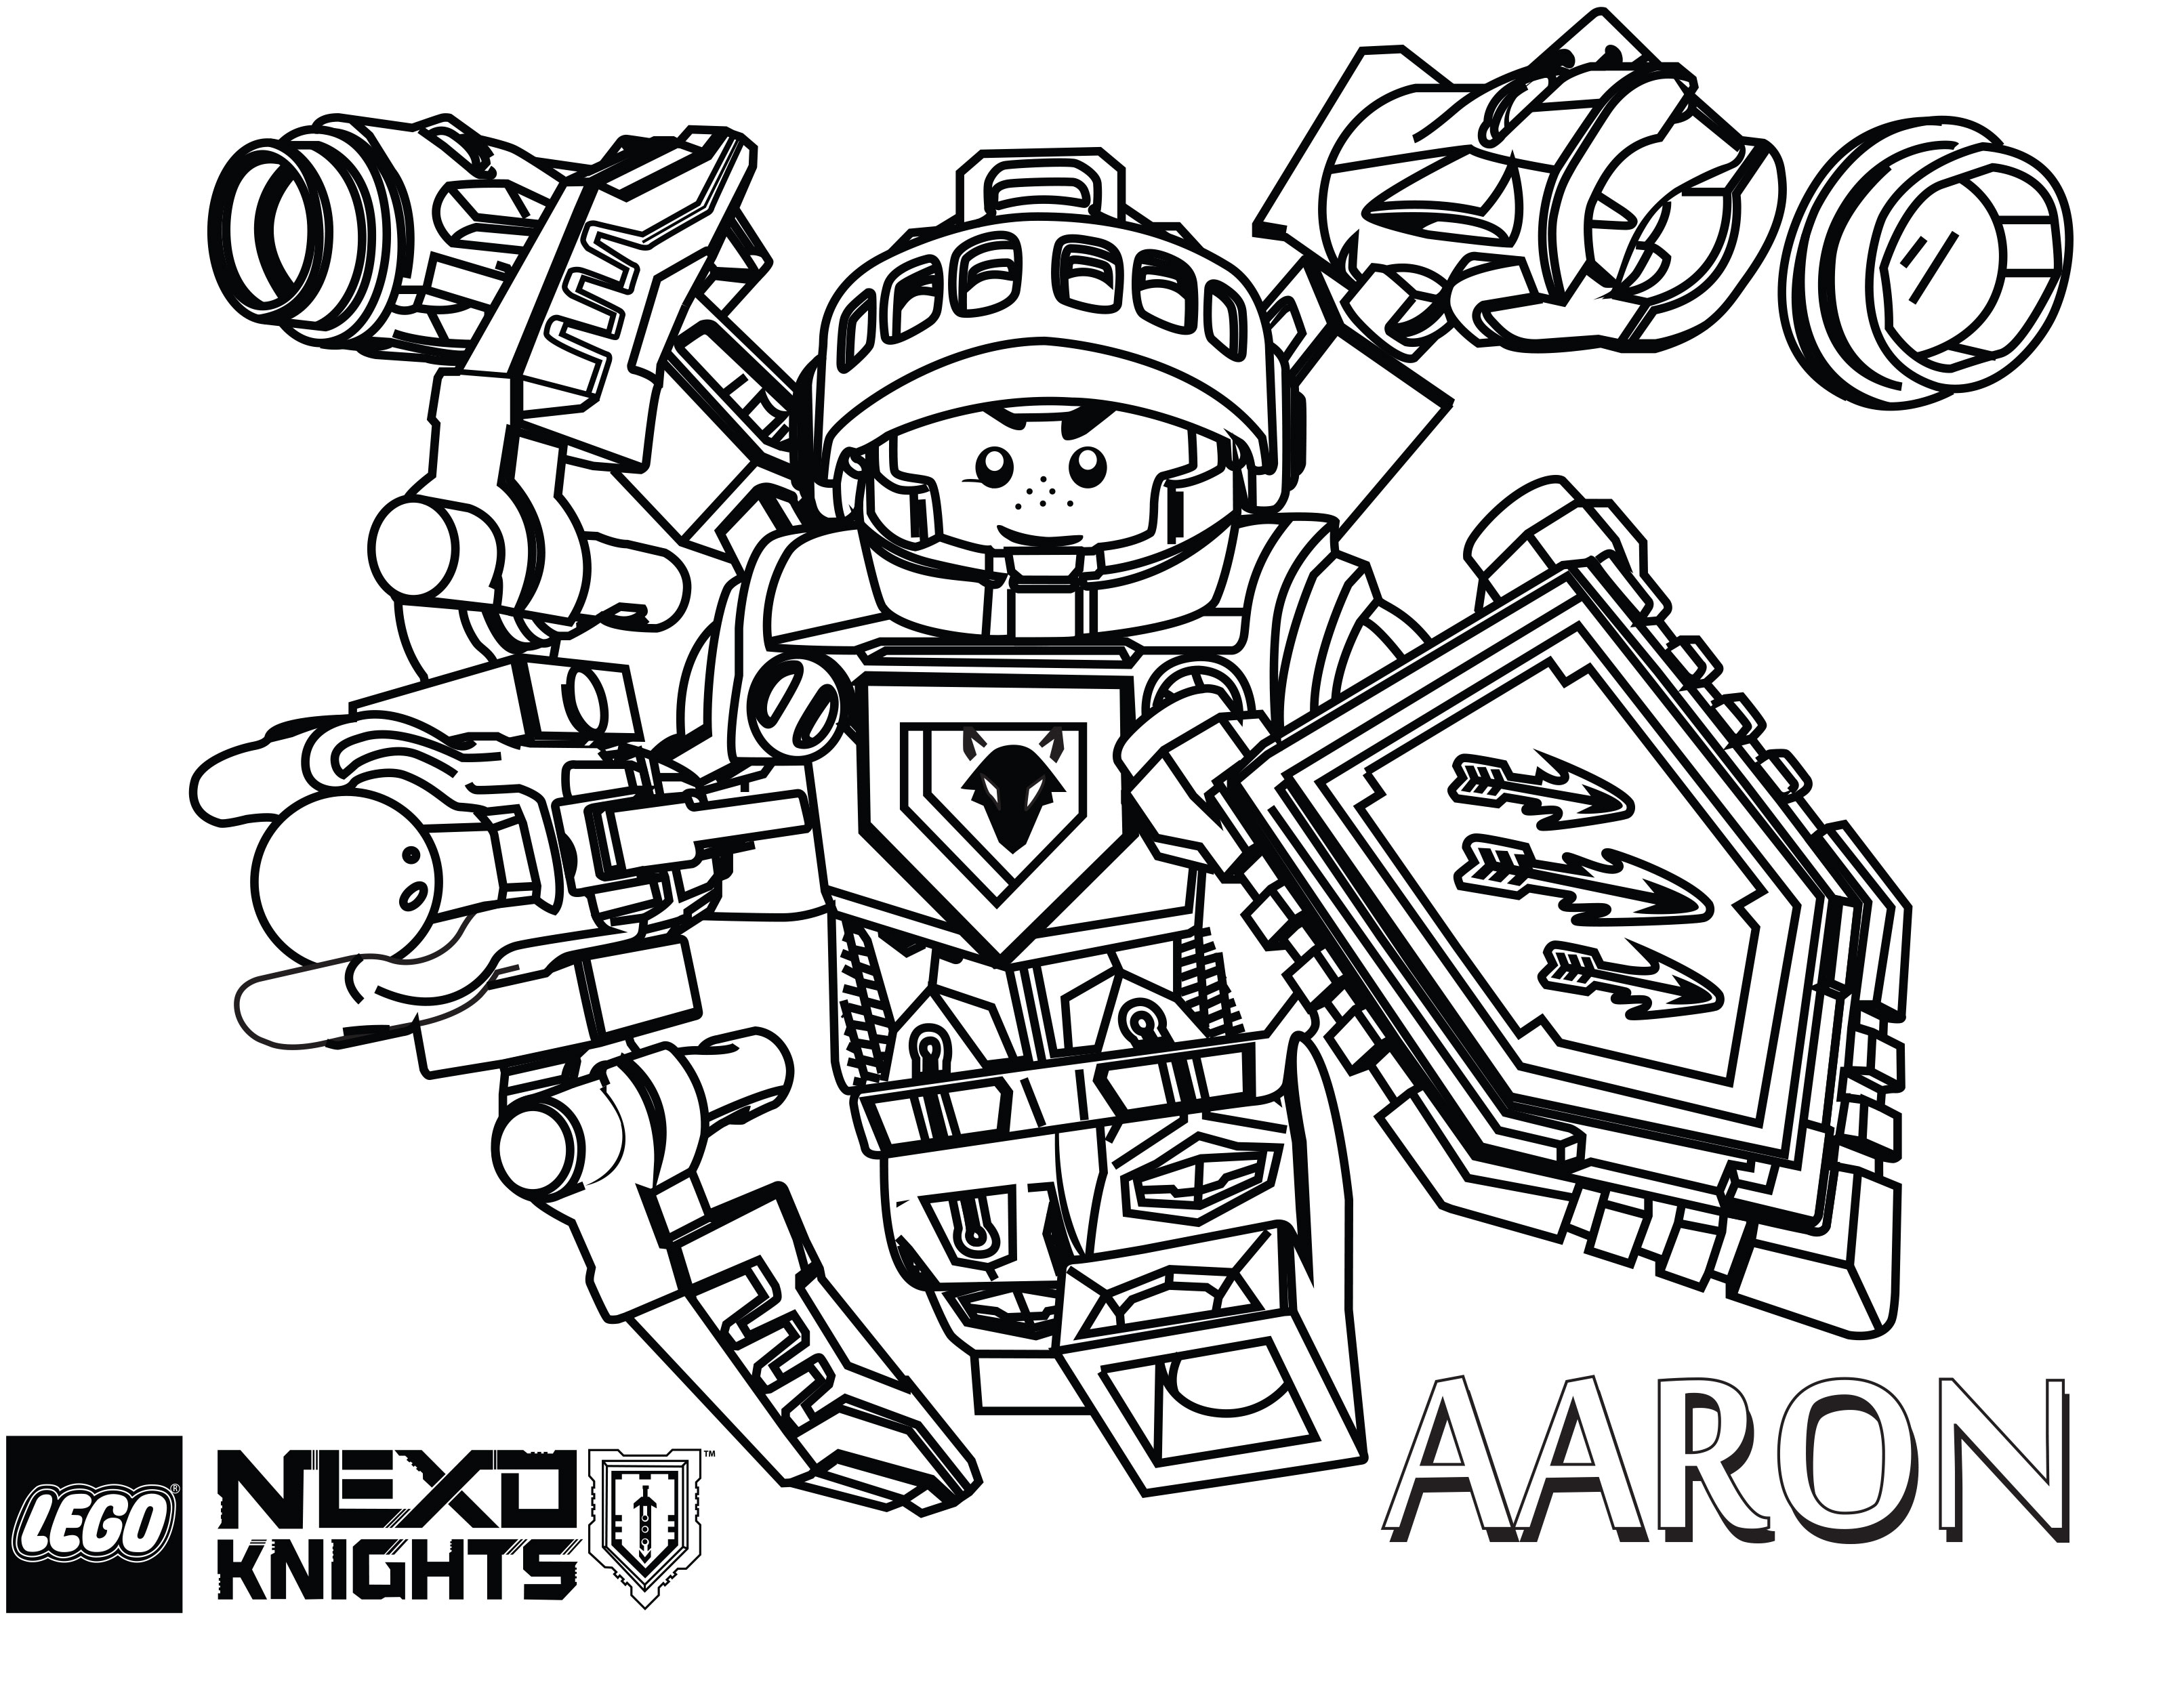 Nexo Knight Coloring Pages - Lego Nexo Knights Clay Coloring Pages Coloring Pages